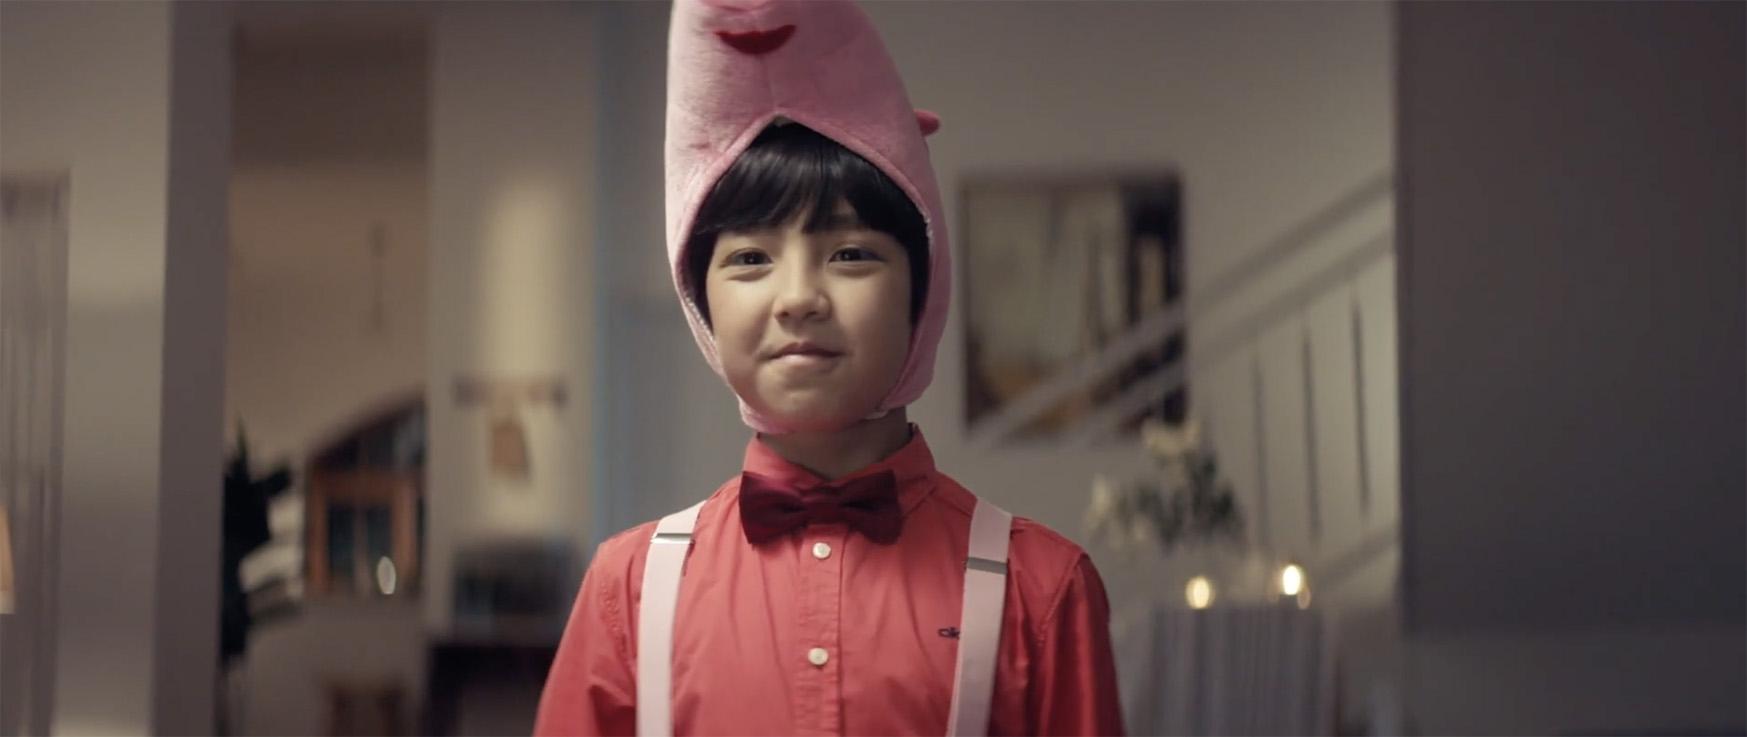 F5 Shanghai releases moving film to highlight Baidu's deaf-mute learning tech